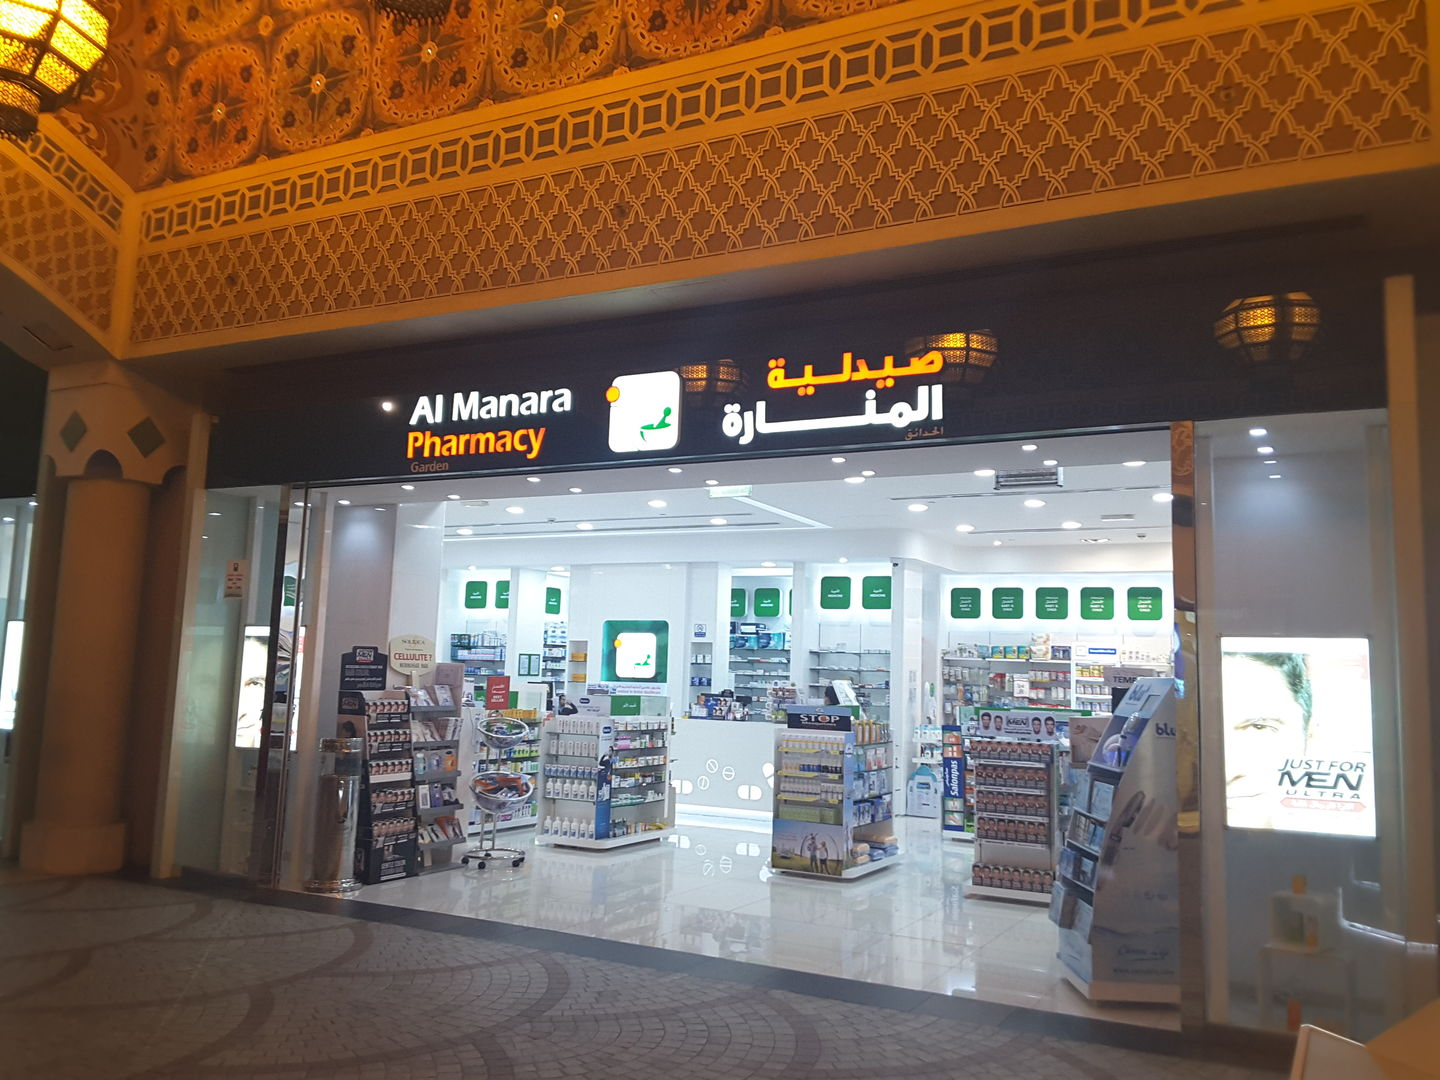 HiDubai-business-al-manara-garden-pharmacy-beauty-wellness-health-pharmacy-ibn-batuta-jebel-ali-1-dubai-2